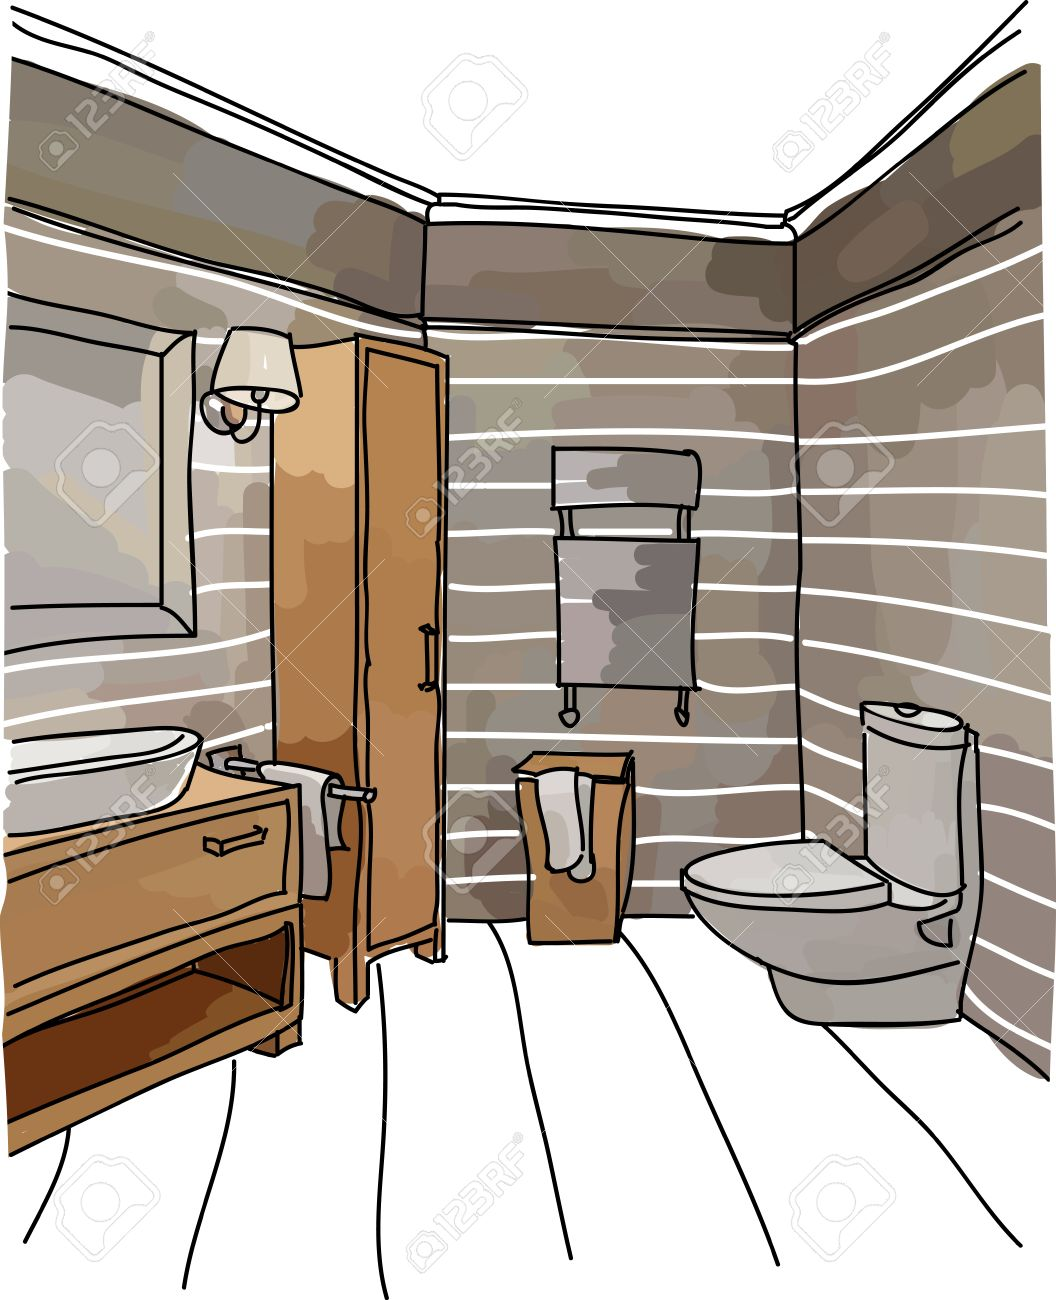 Color Drawing Of Bathroom Interior Modern Style Stock Vector